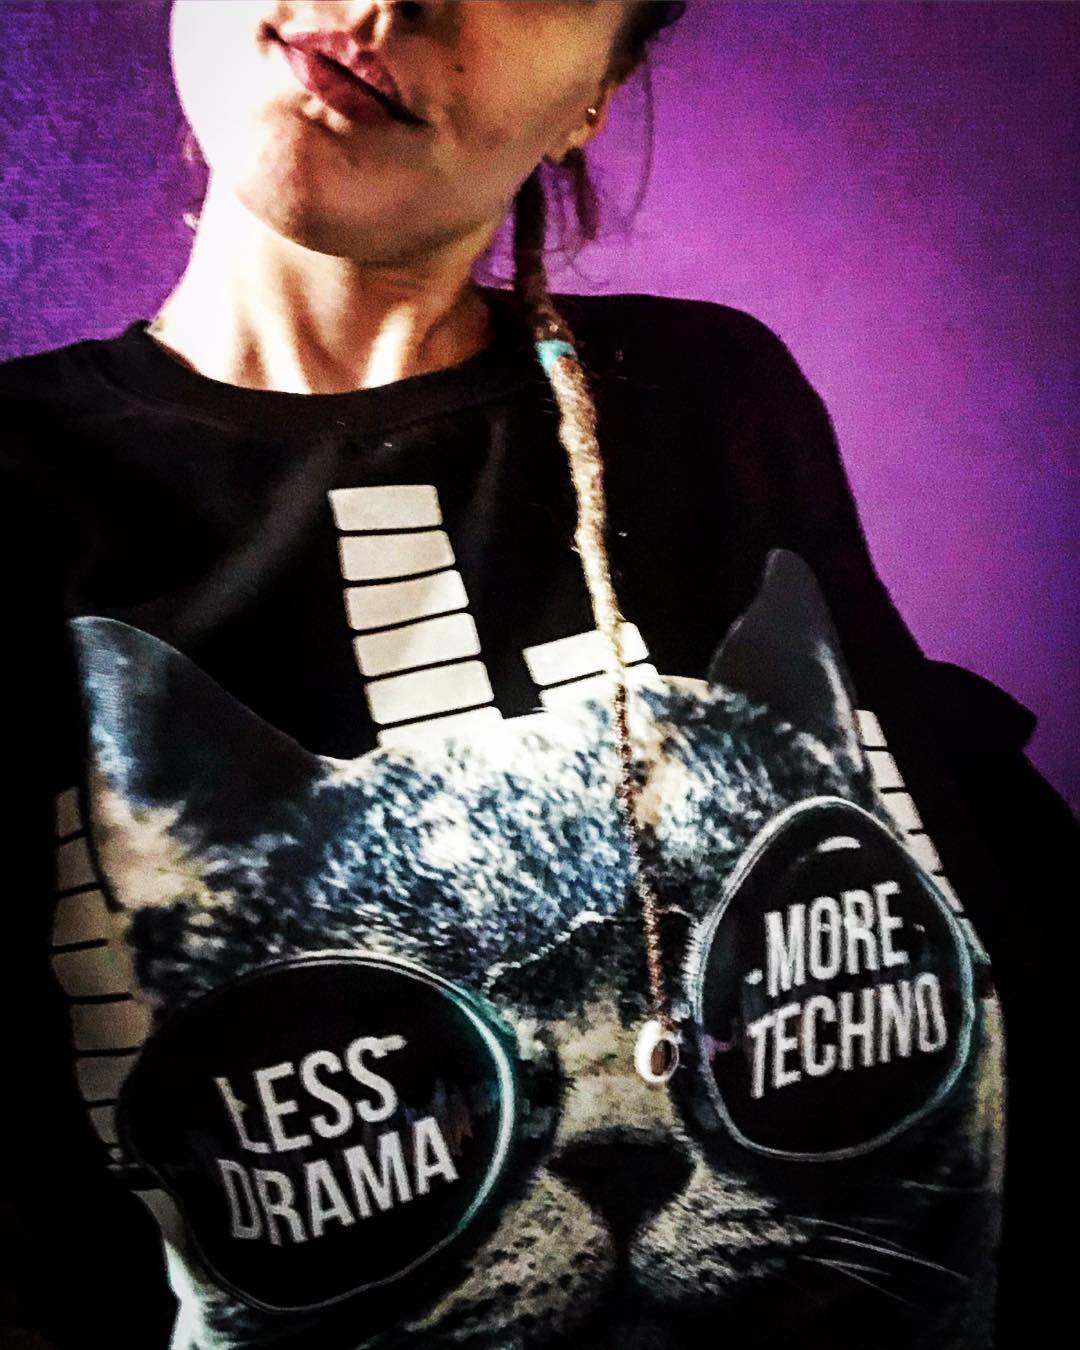 Less Drama More Techno Sunglasses Cat Shirts photo review